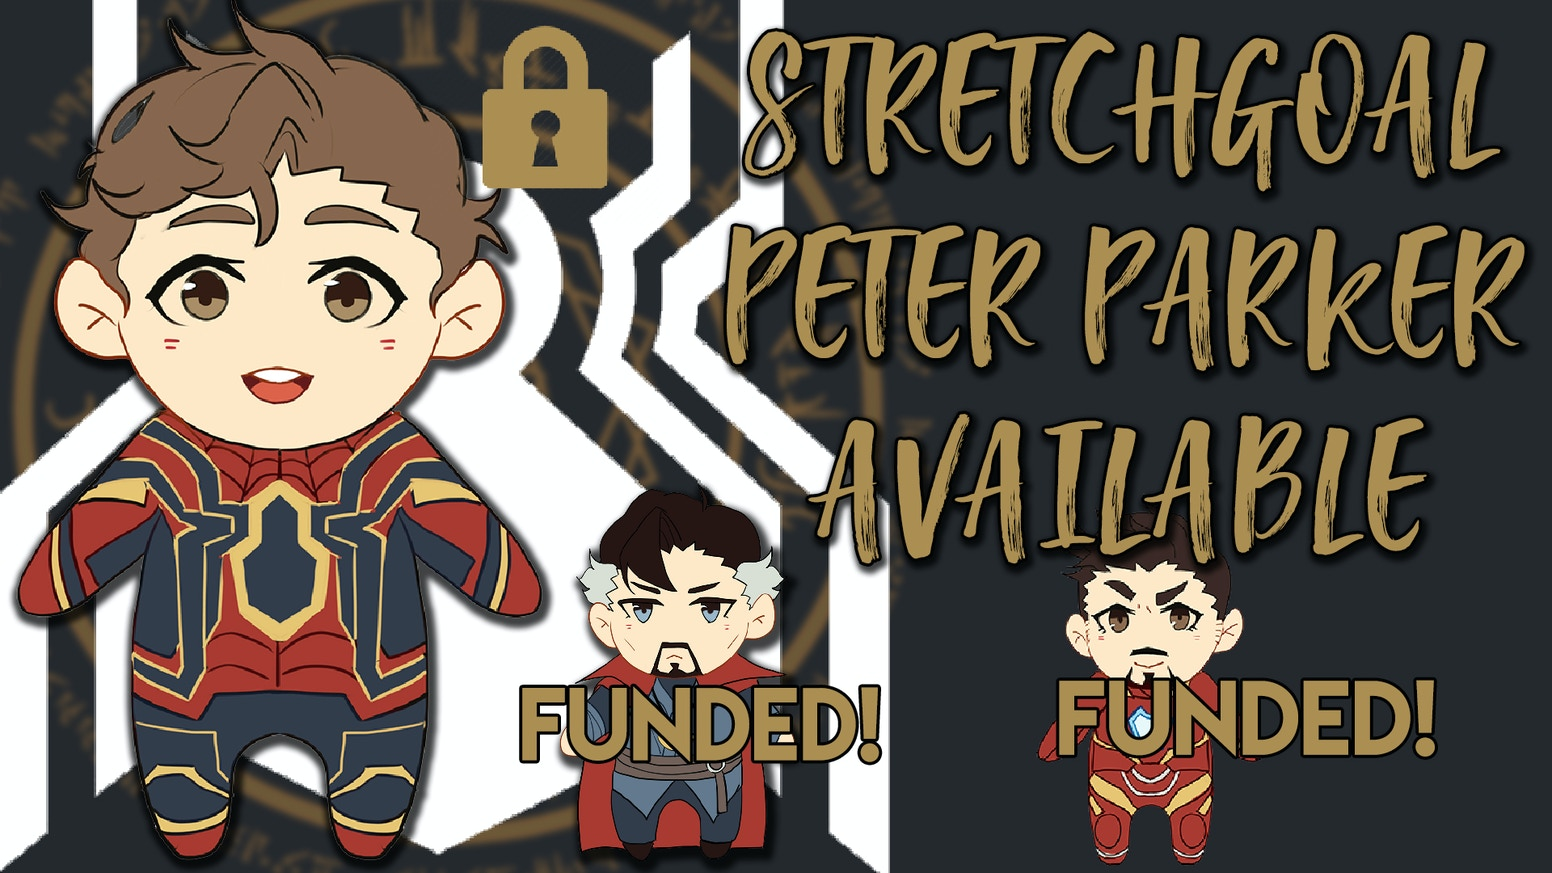 Hi! I want to produce Plushies themed after the Marvel Characters of Dr. Strange, Ironman & Spiderman